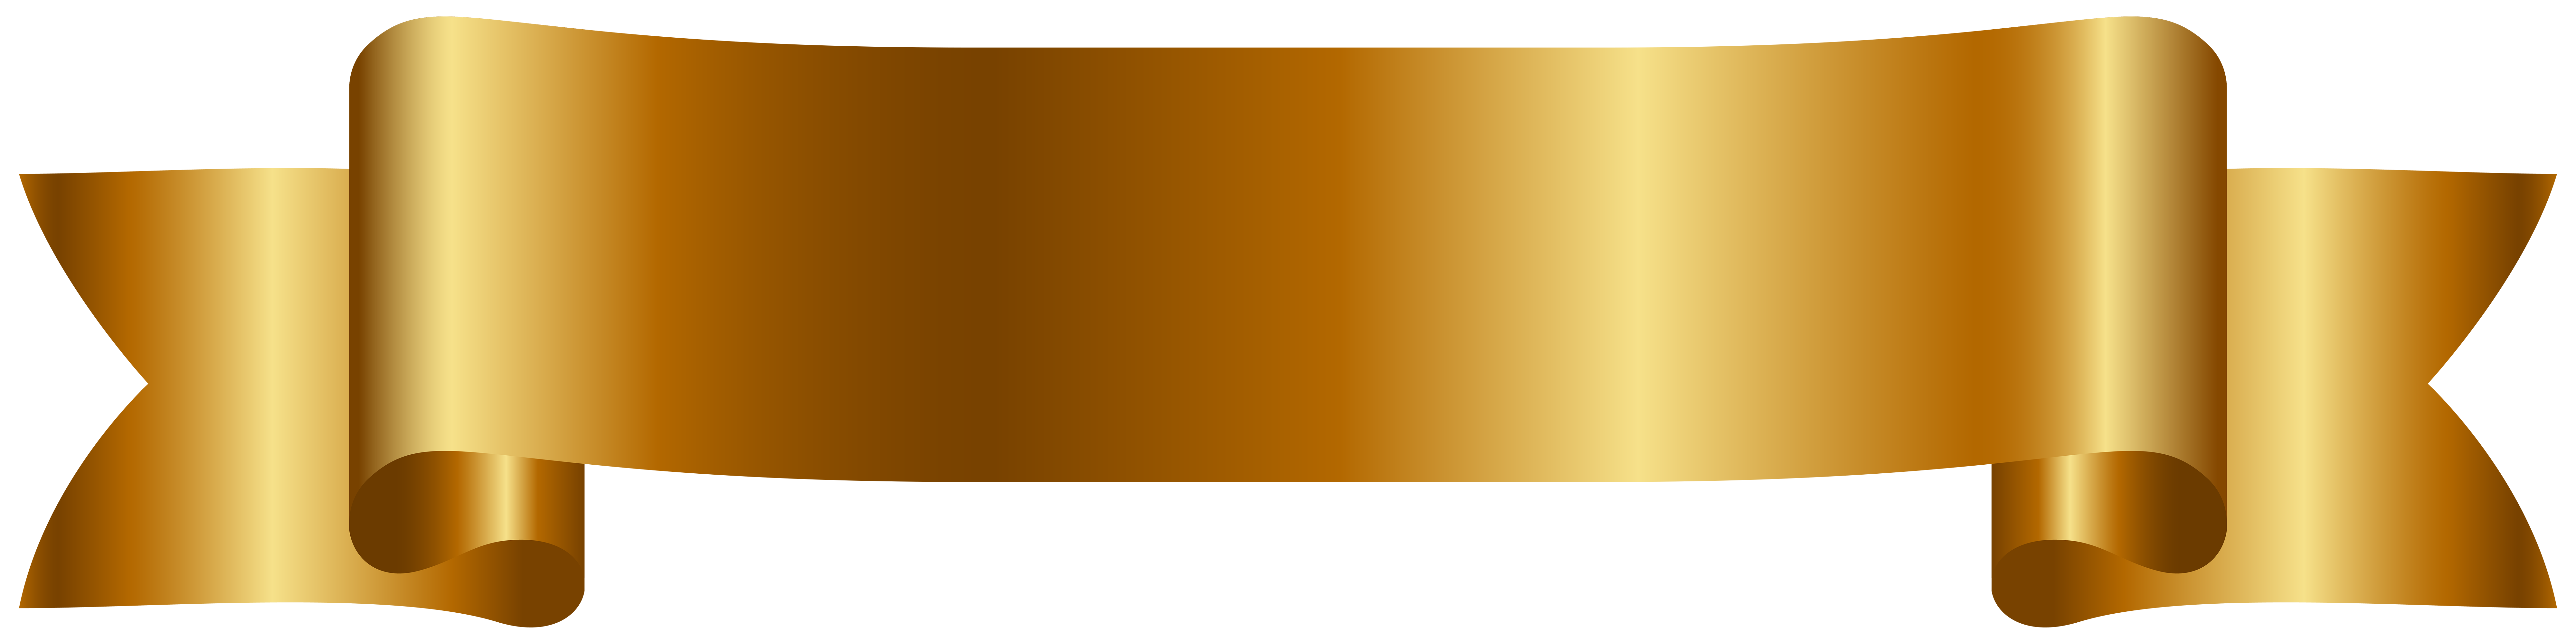 Free Golden Banner Cliparts, Download Free Clip Art, Free.